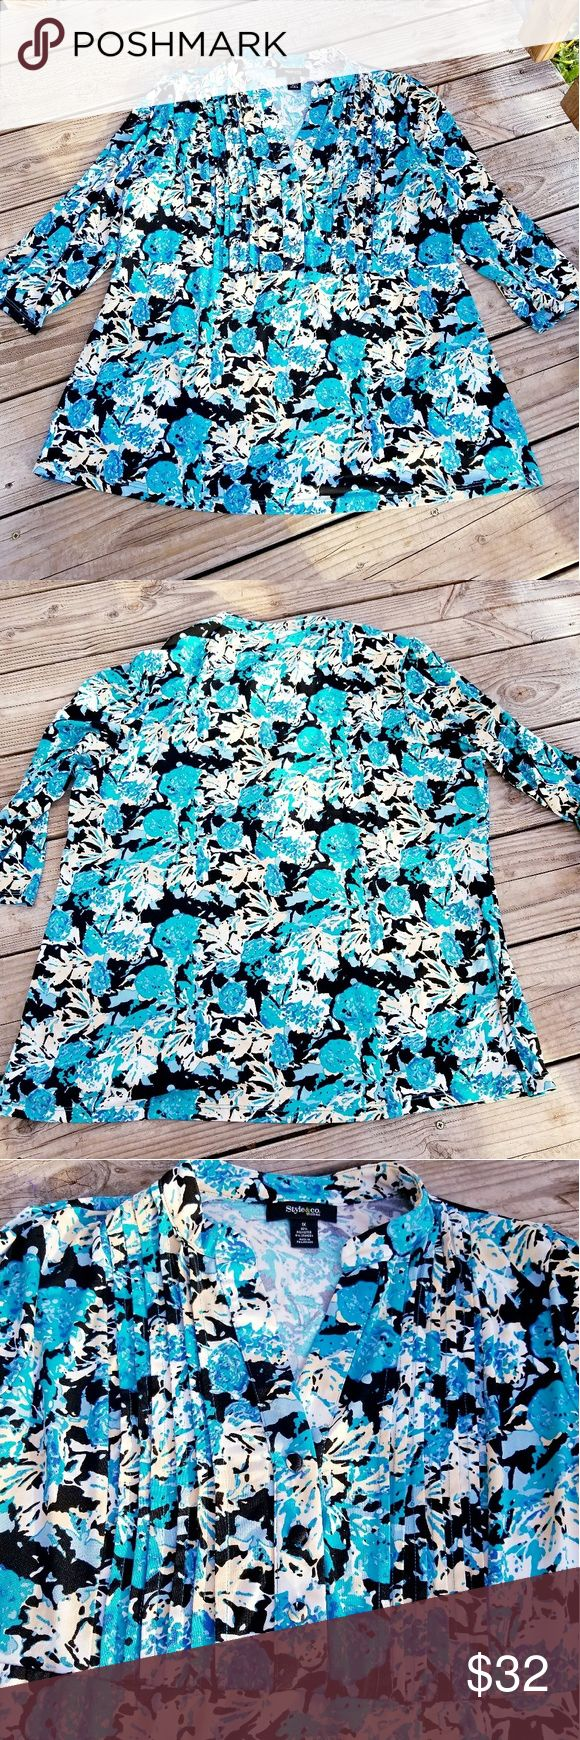 """Teal & Aqua Floral Plus Sized Blouse I think it's more like a 2X. Gorgeous colors! Teal, turquoise, aqua, black, white, & beige. Has pretty button & bust details. Kind of a ribbed ripple effect from the shoulder line to the under bust. Creates kind of a babydoll effect. The material is super stretchy & heavier than expected. Bust-48-52"""". Waist- Stretches to 44"""", but to fit more like a babydoll, the max waist measurement should be closer to 36"""". Hips Stretches to 52, but to fit loosely the…"""